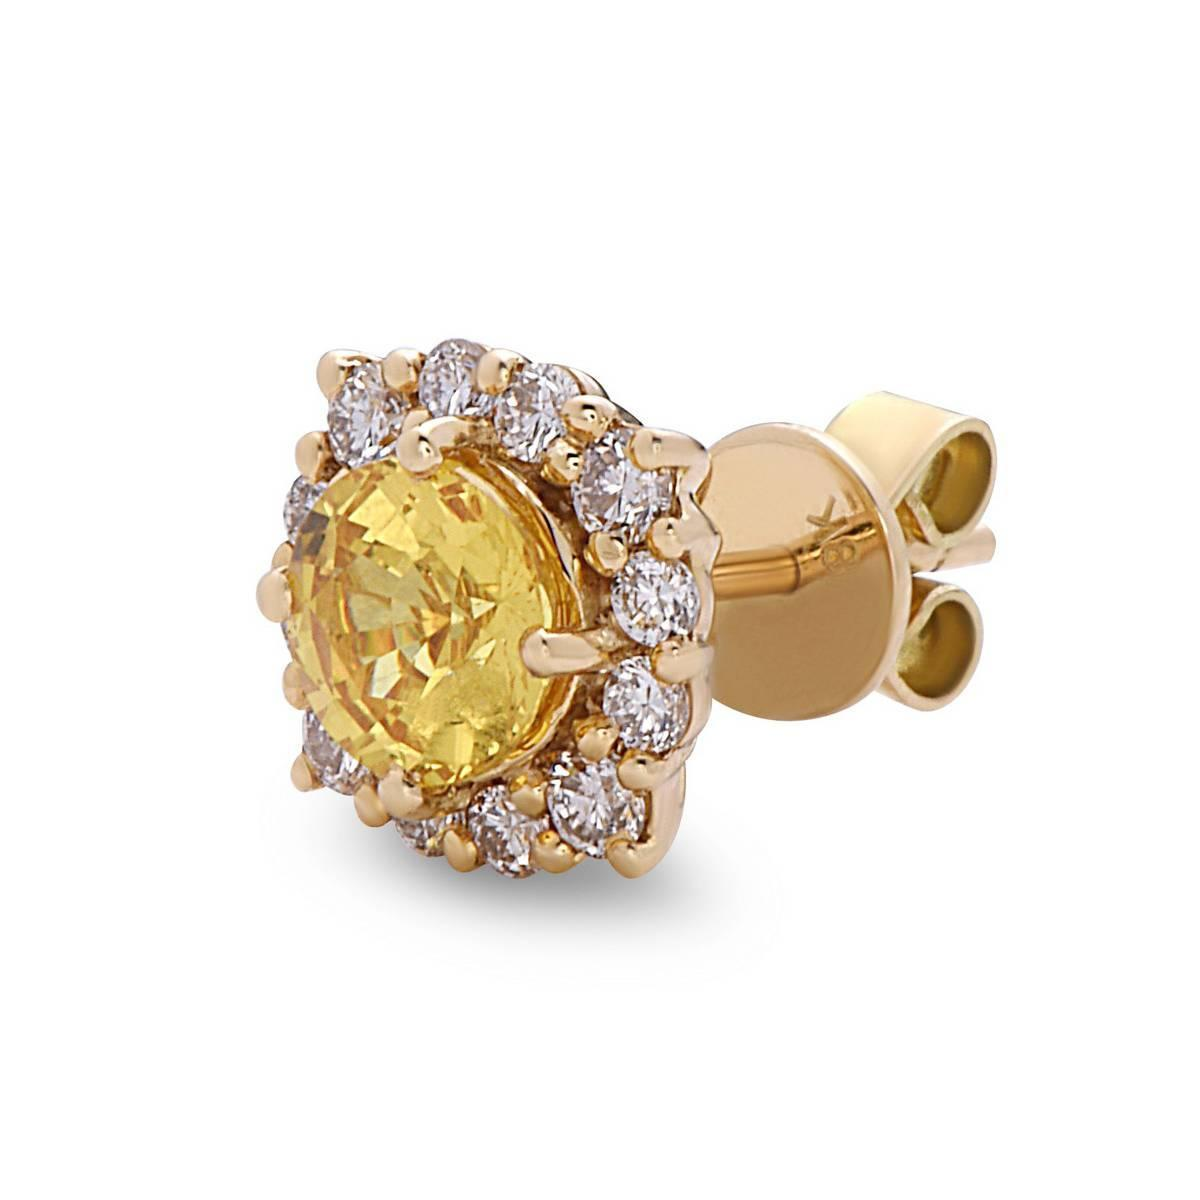 Stunning Yellow Sapphire Diamond Gold Stud Earrings At 1stdibs. Ideal Cut Diamond. Professional Rings. Emerald Bands. Beads Usa Online. Rubber Wedding Rings. Leaf Chains. Benchmark Bands. 14k Bangles